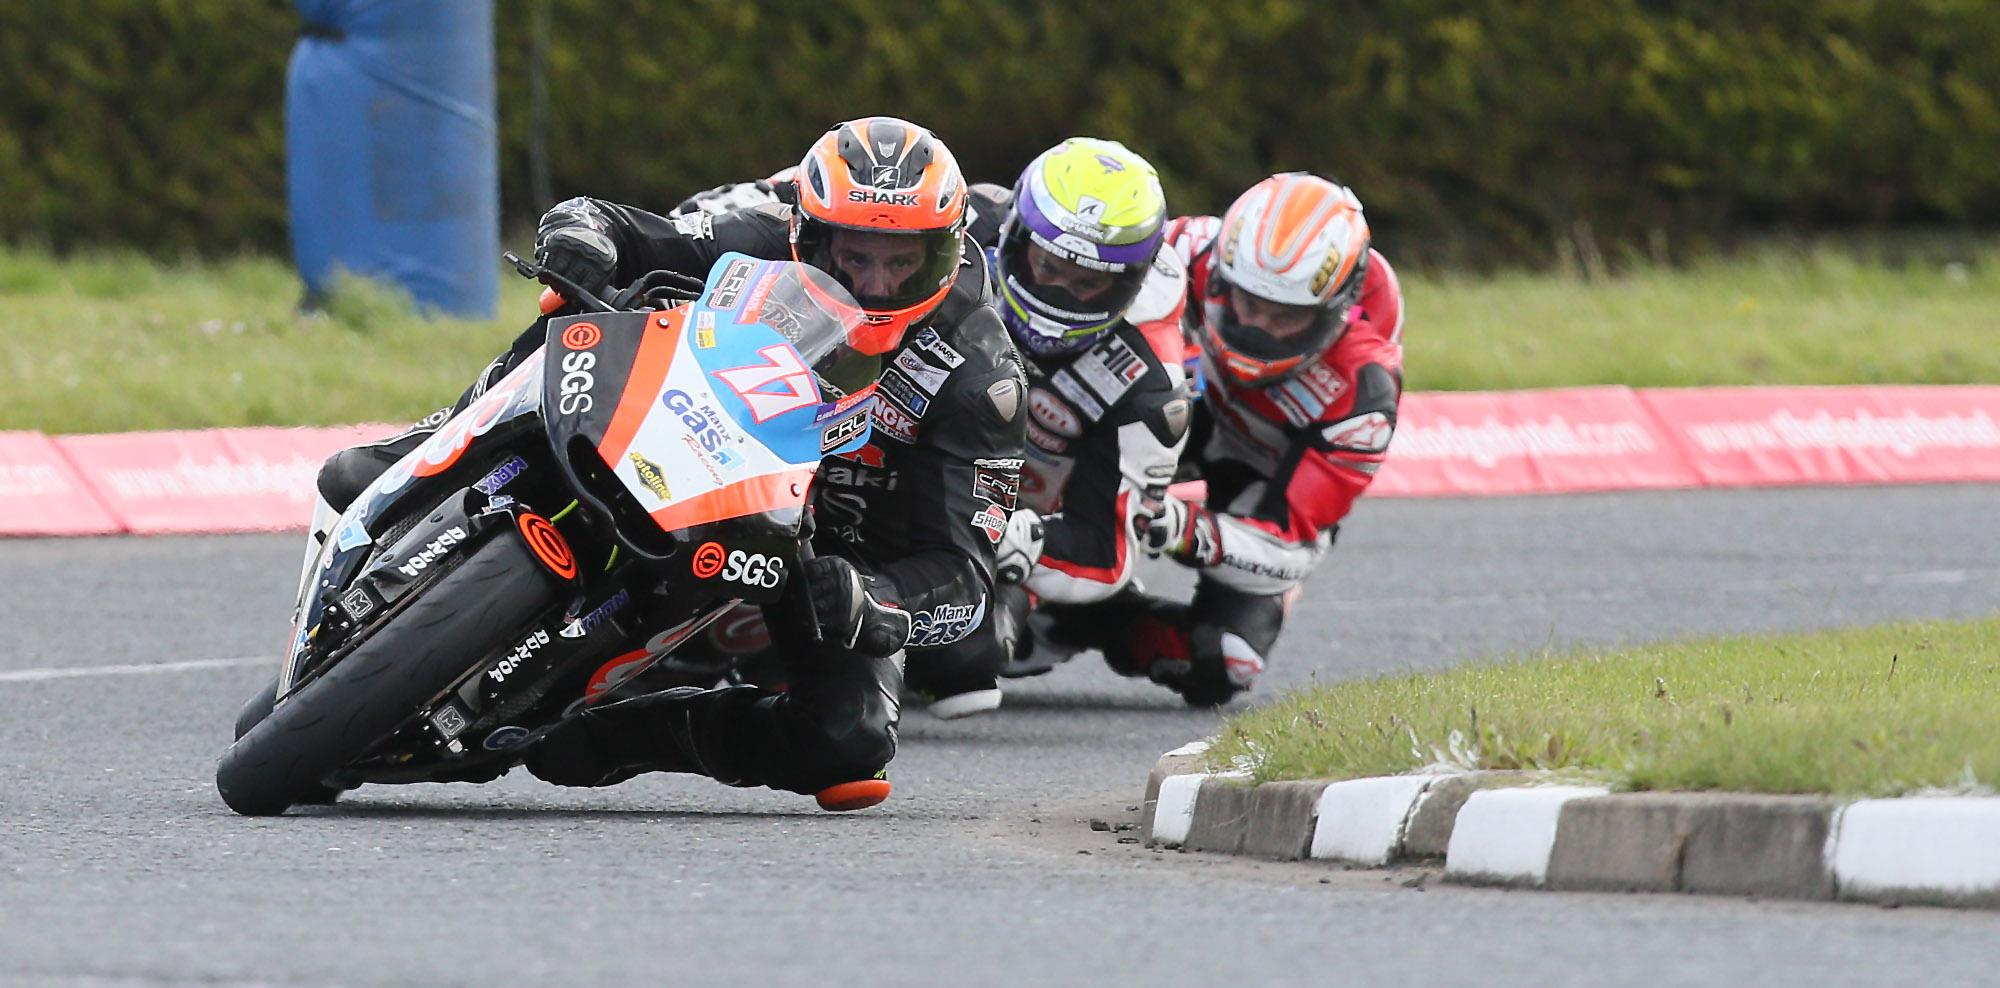 Ryan leads Jamie Hamilton and team-mate Jeremy McWilliams - Image courtesy of Pacemaker Press International